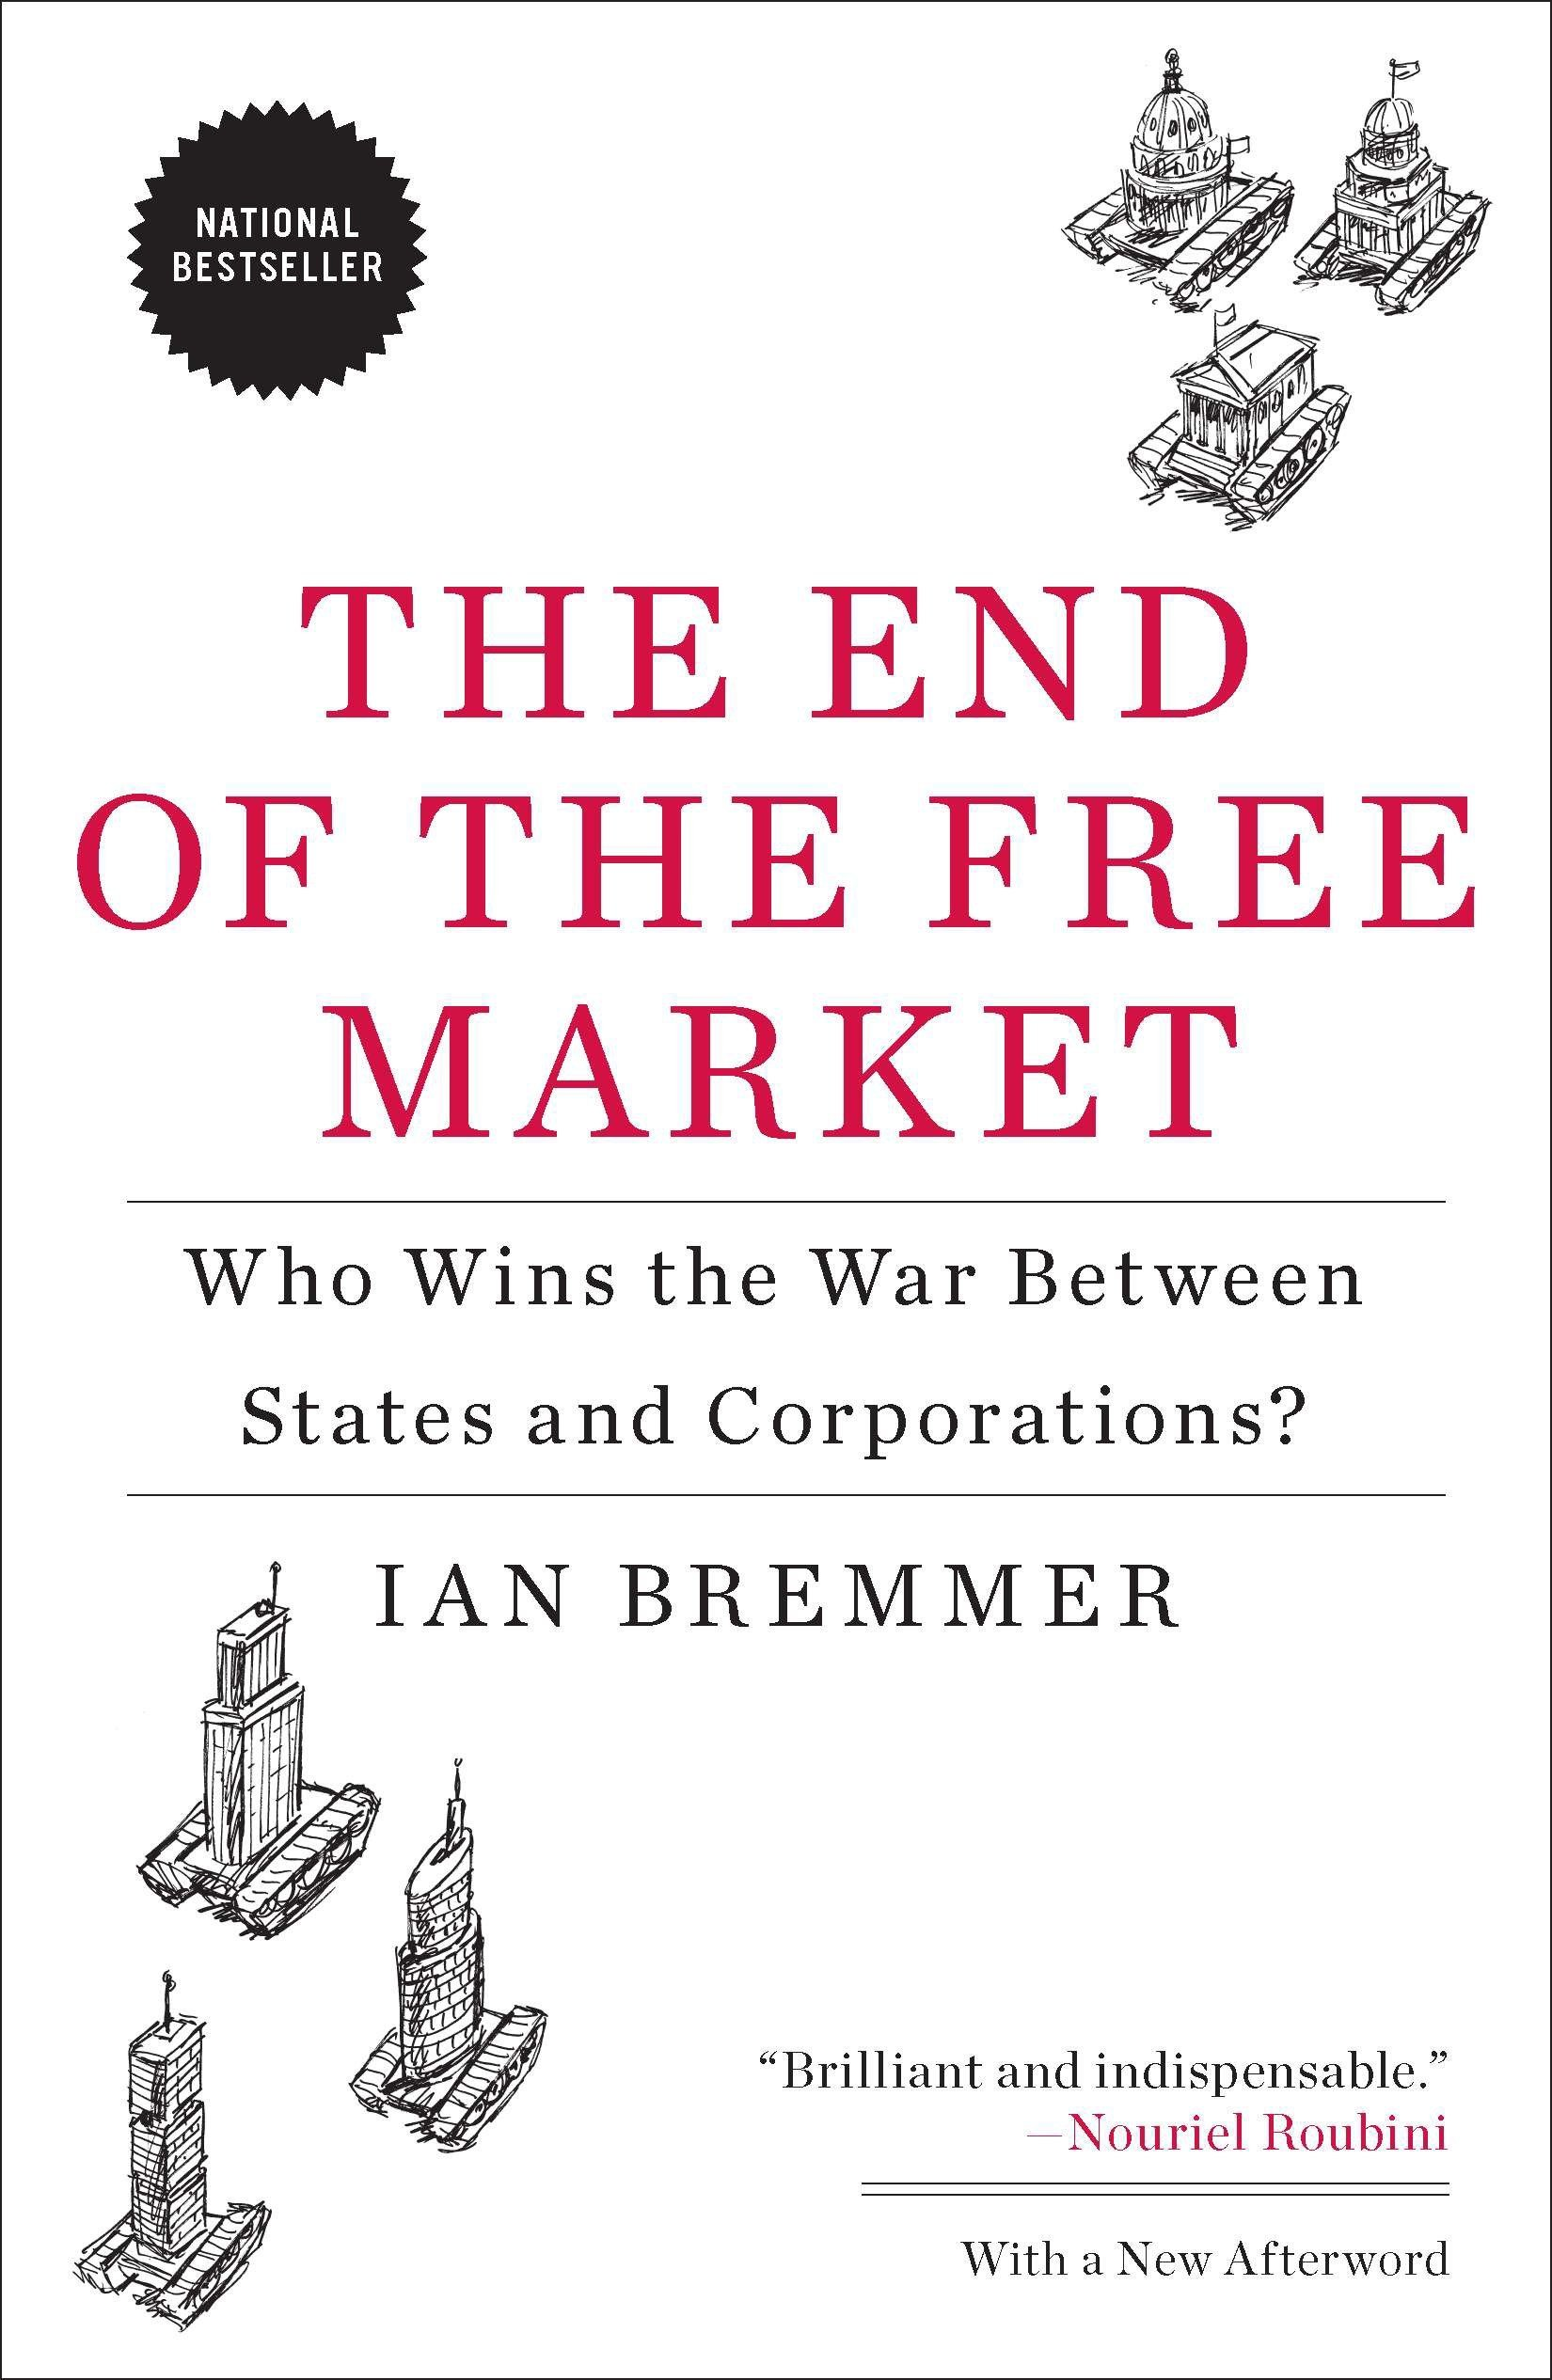 the end of the free market who wins the war between states and